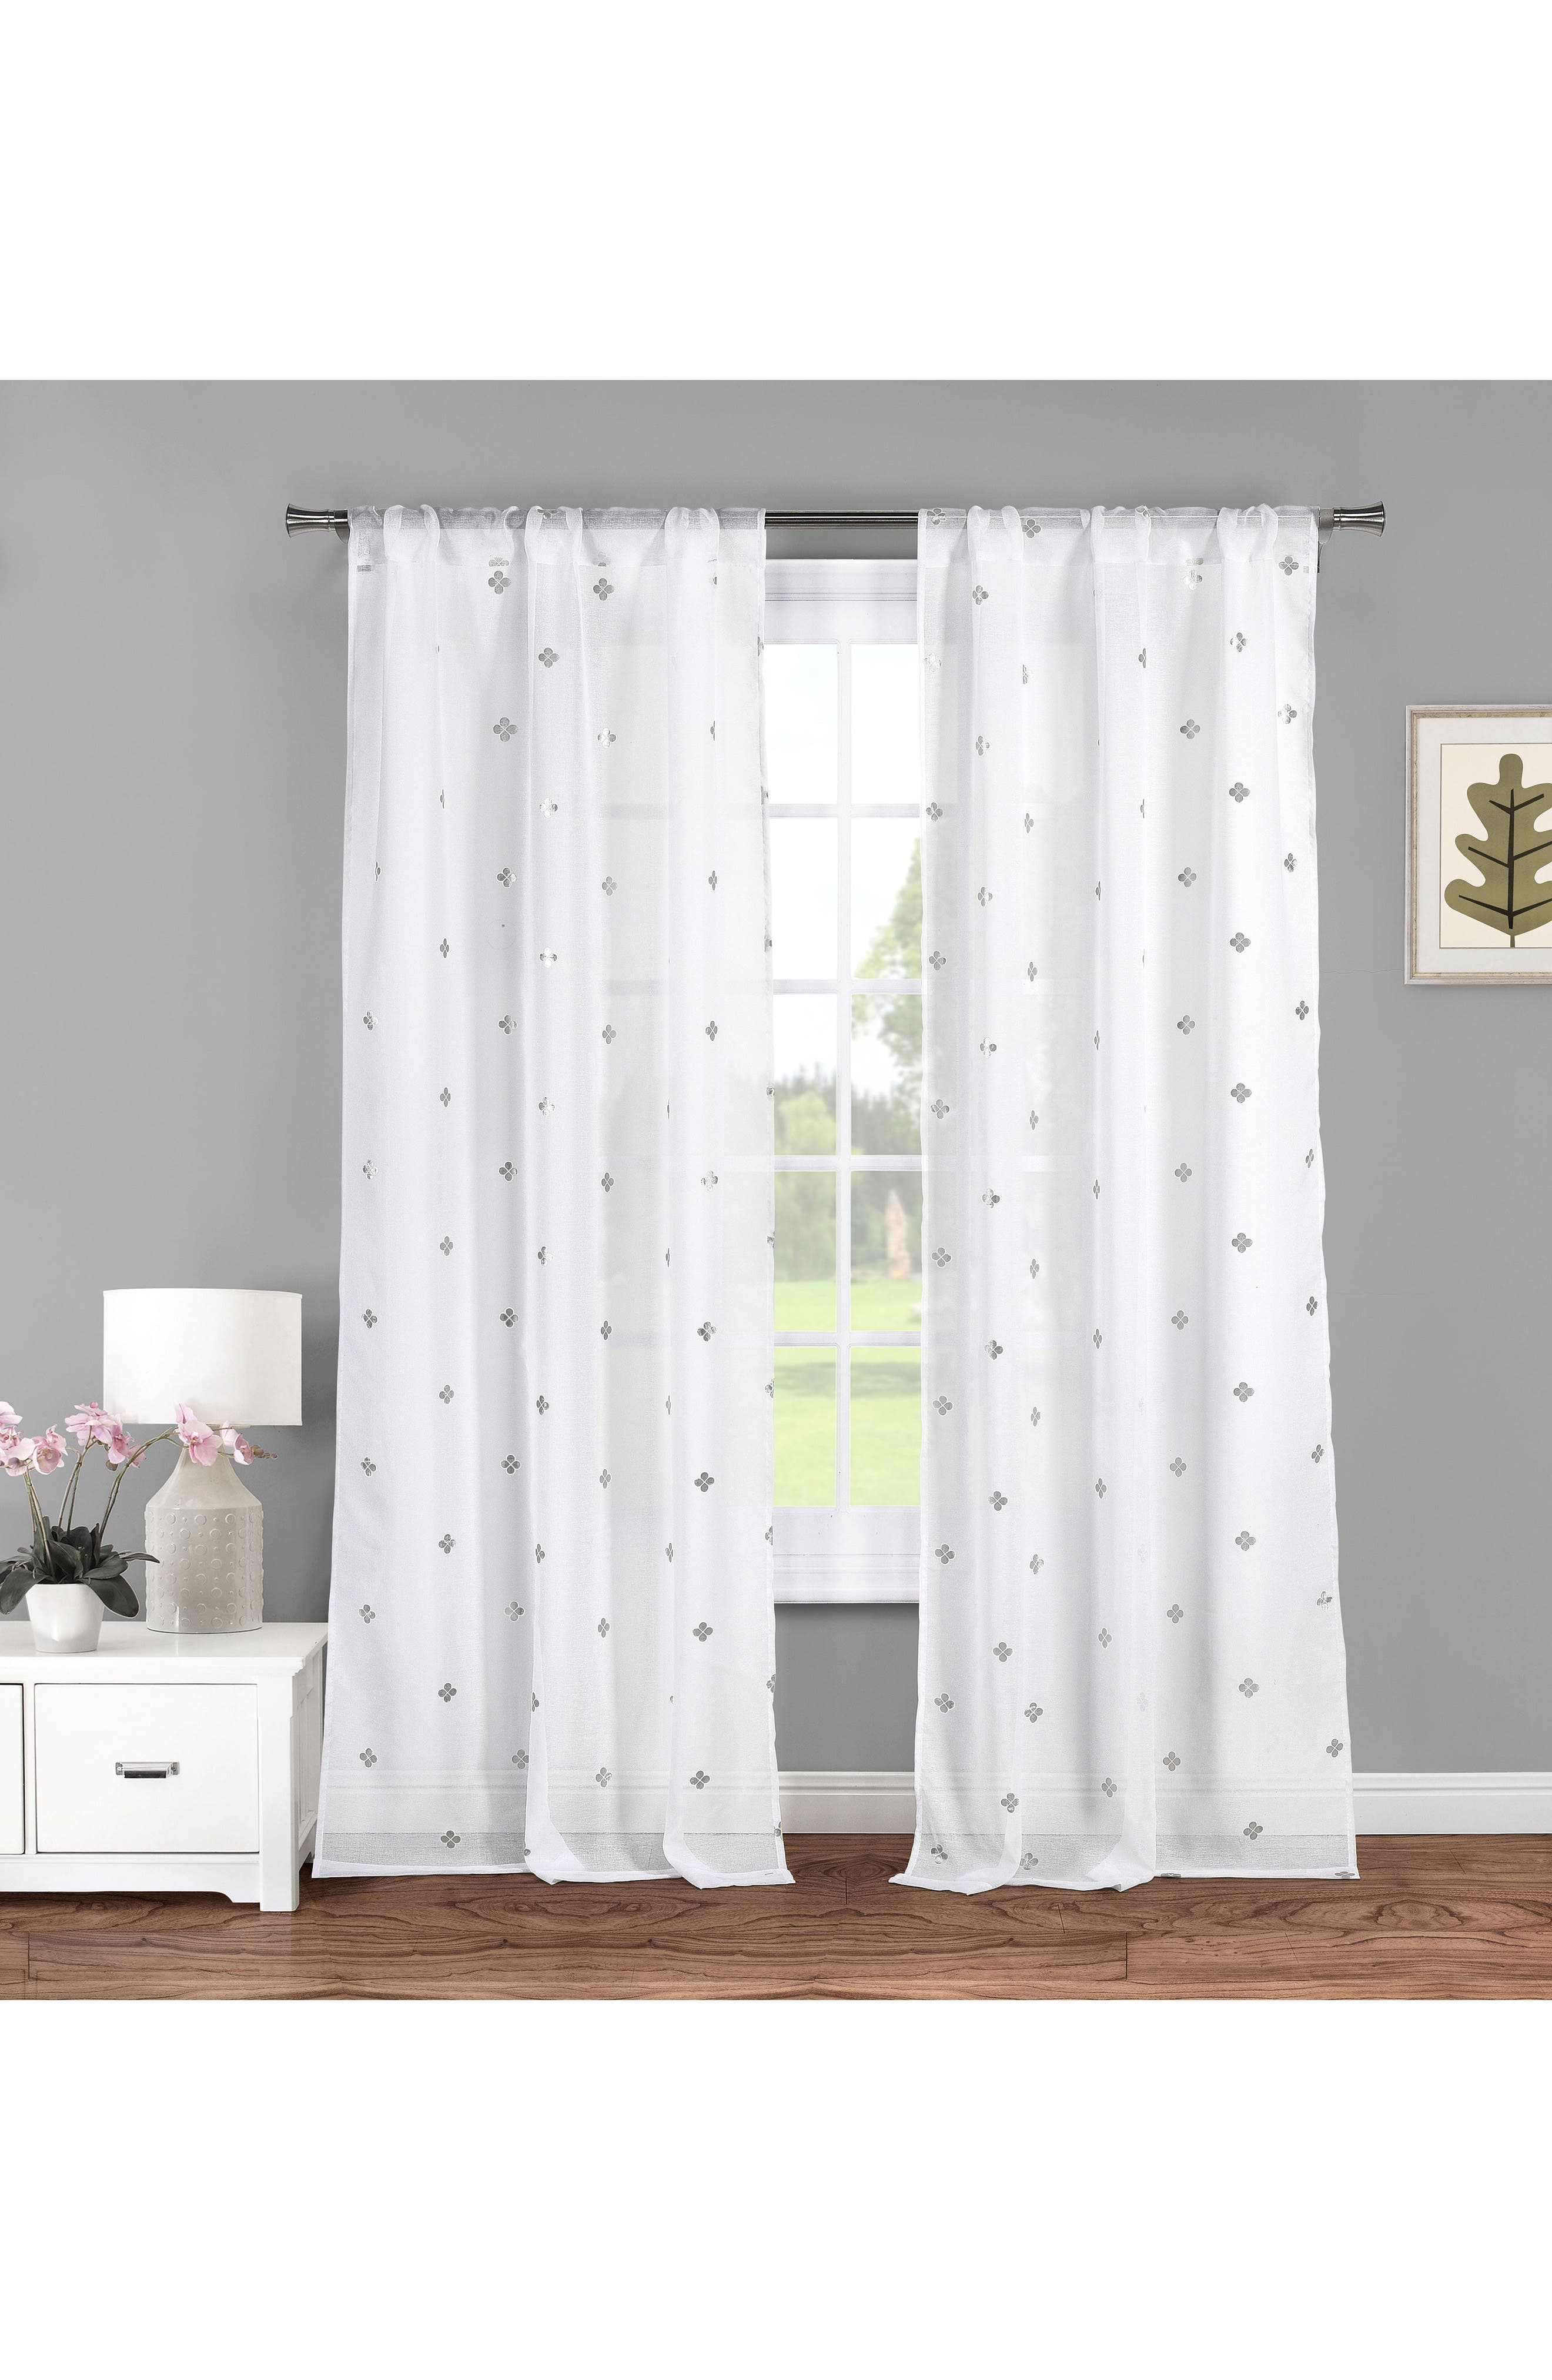 LALA + BASH Becca Metallic Clover Sheer Window Panels